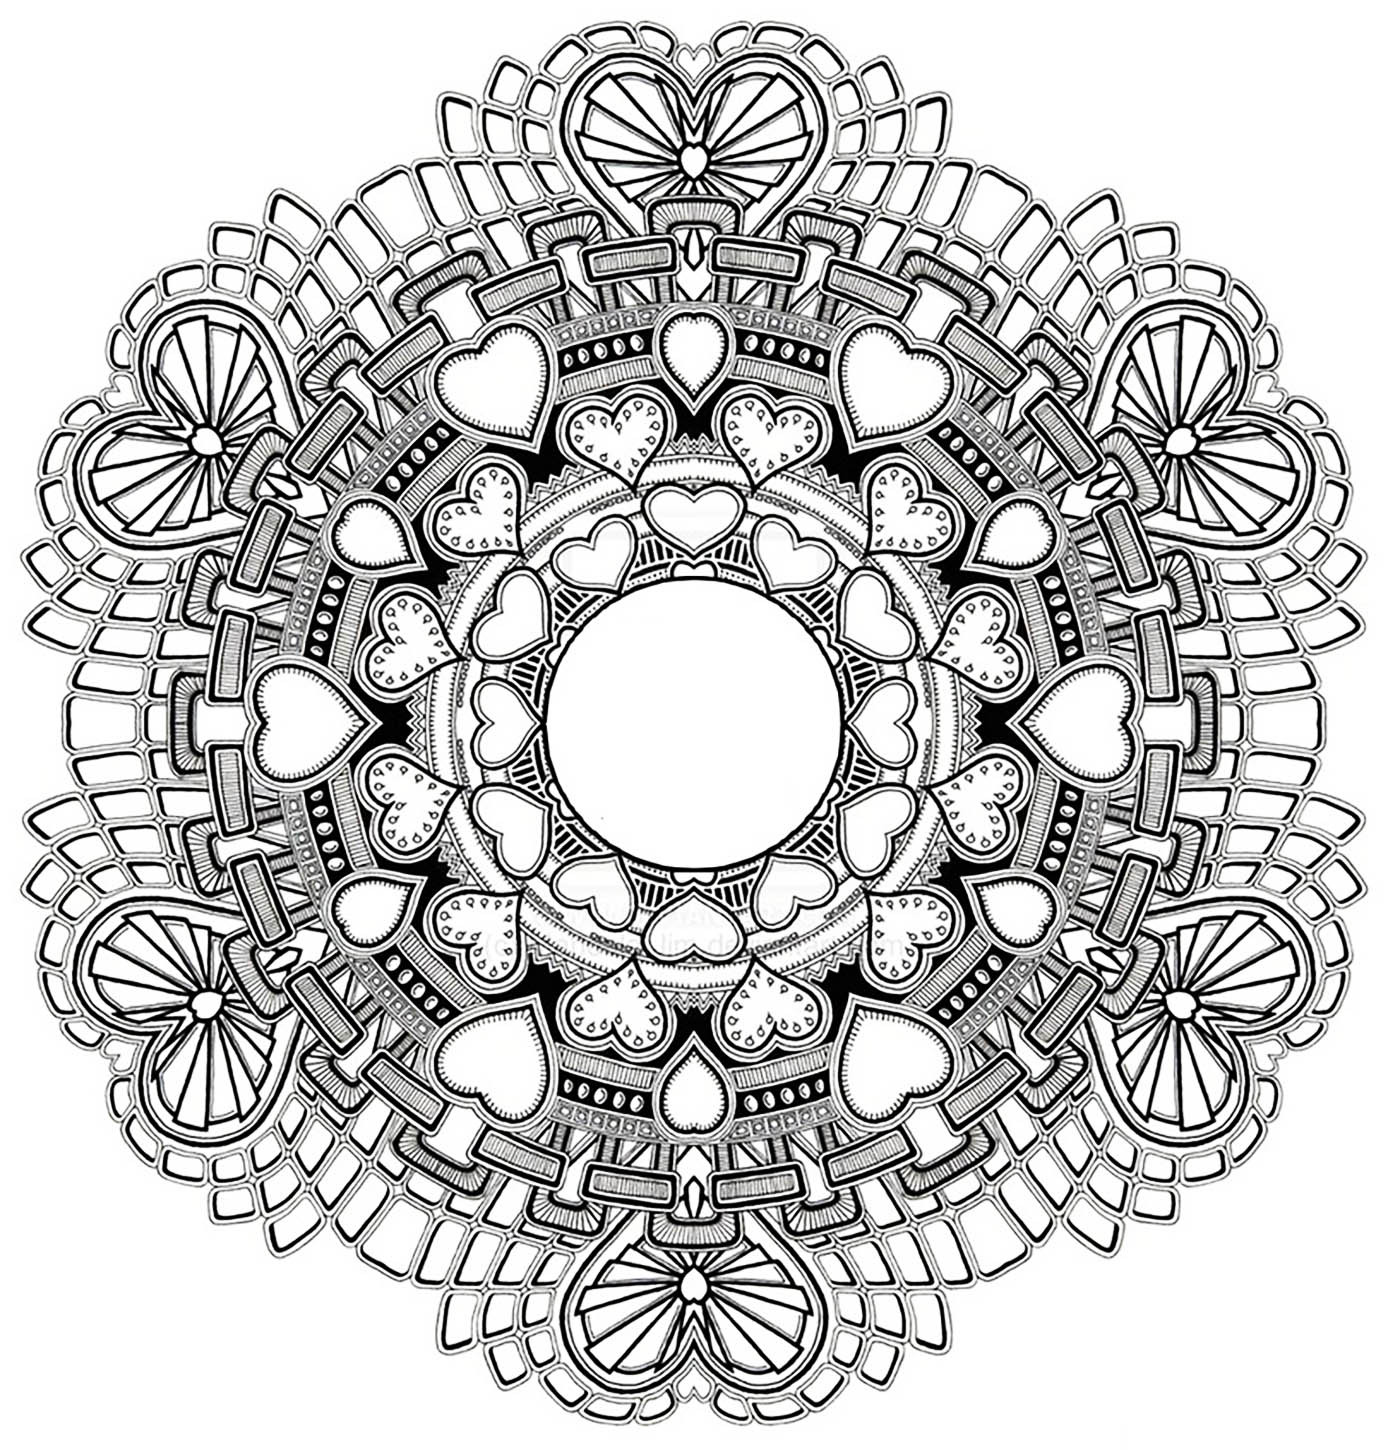 Incredible Zen & Anti-stress Mandala. Designing and coloring mandalas bring peace and tranquility ... it will be the case with this beautiful Mandala.